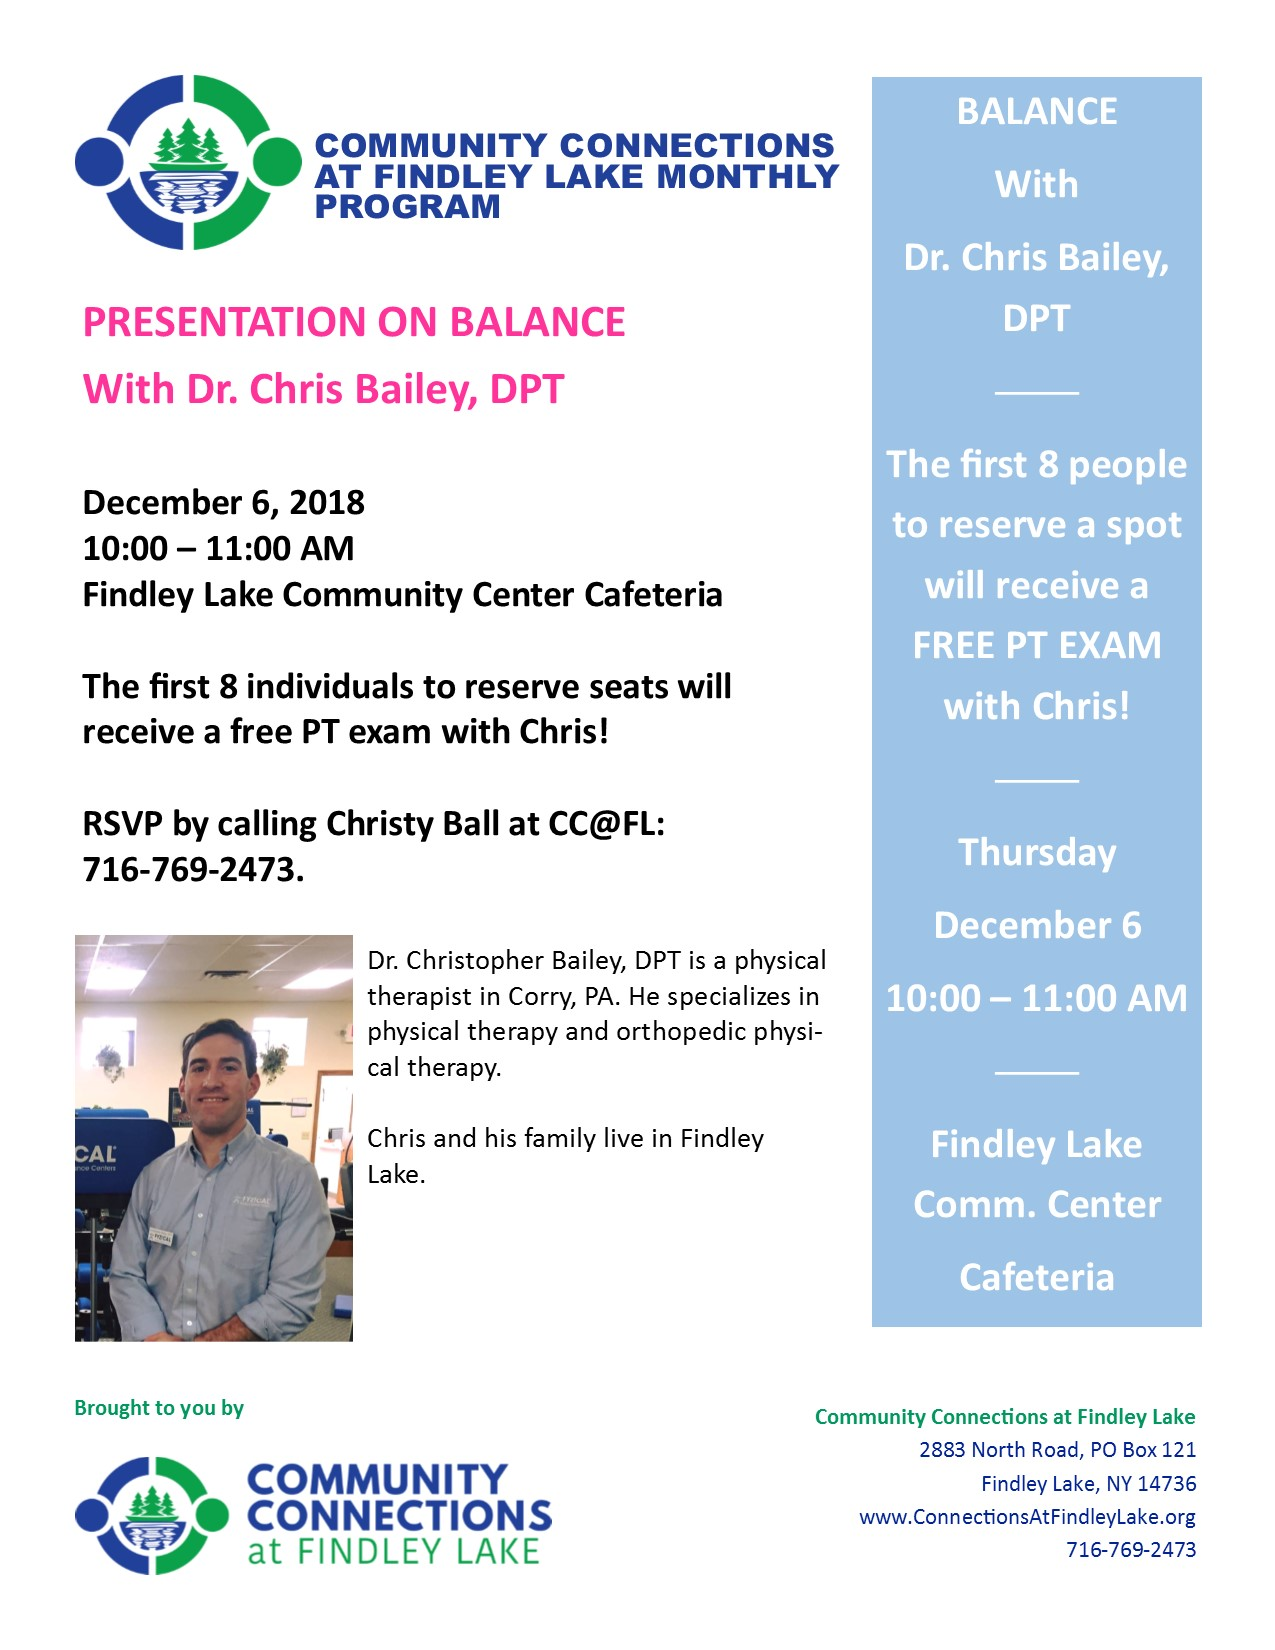 Community Connections at Findley Lake Monthly program - Balance with Chris Bailey.jpg